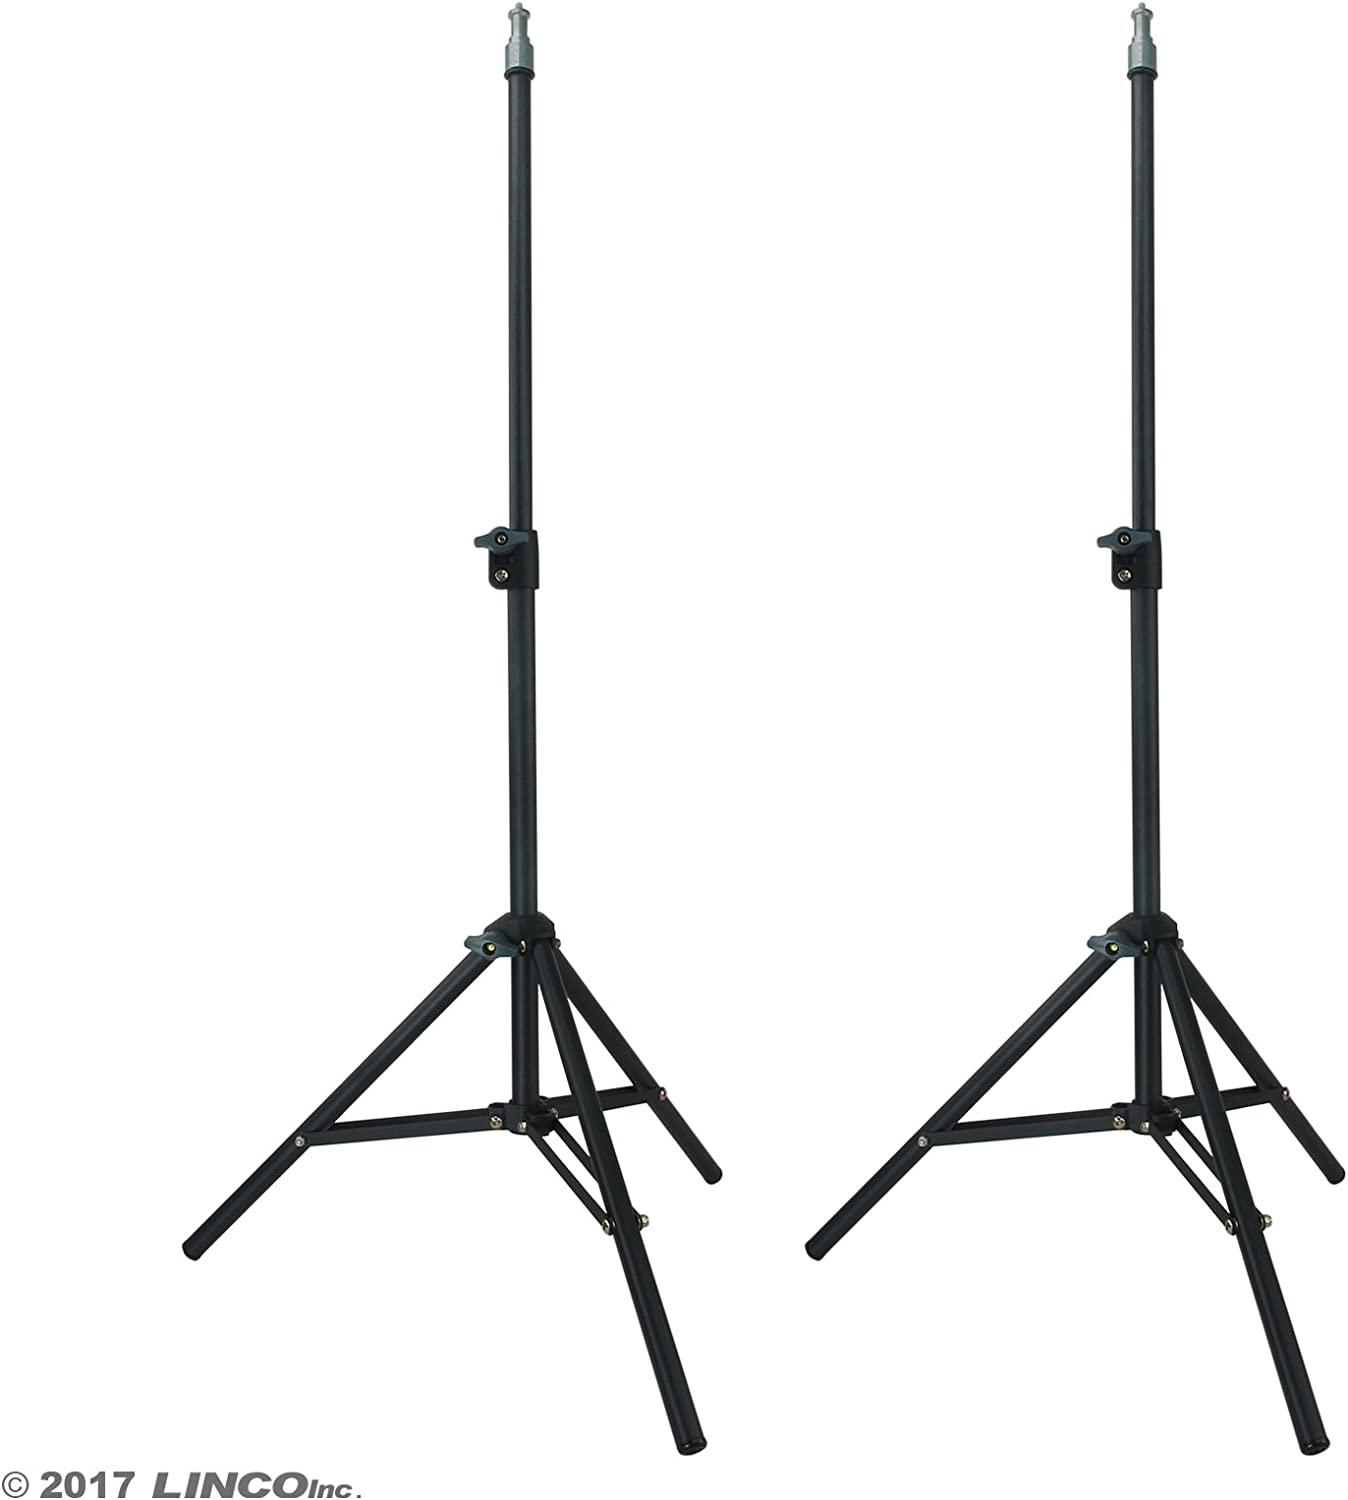 LINCO Zenith 35 Inch Mini Light Stand Set of Two Photography Back Light Stands for Relfectors Umbrellas Lights Backgrounds Softboxes